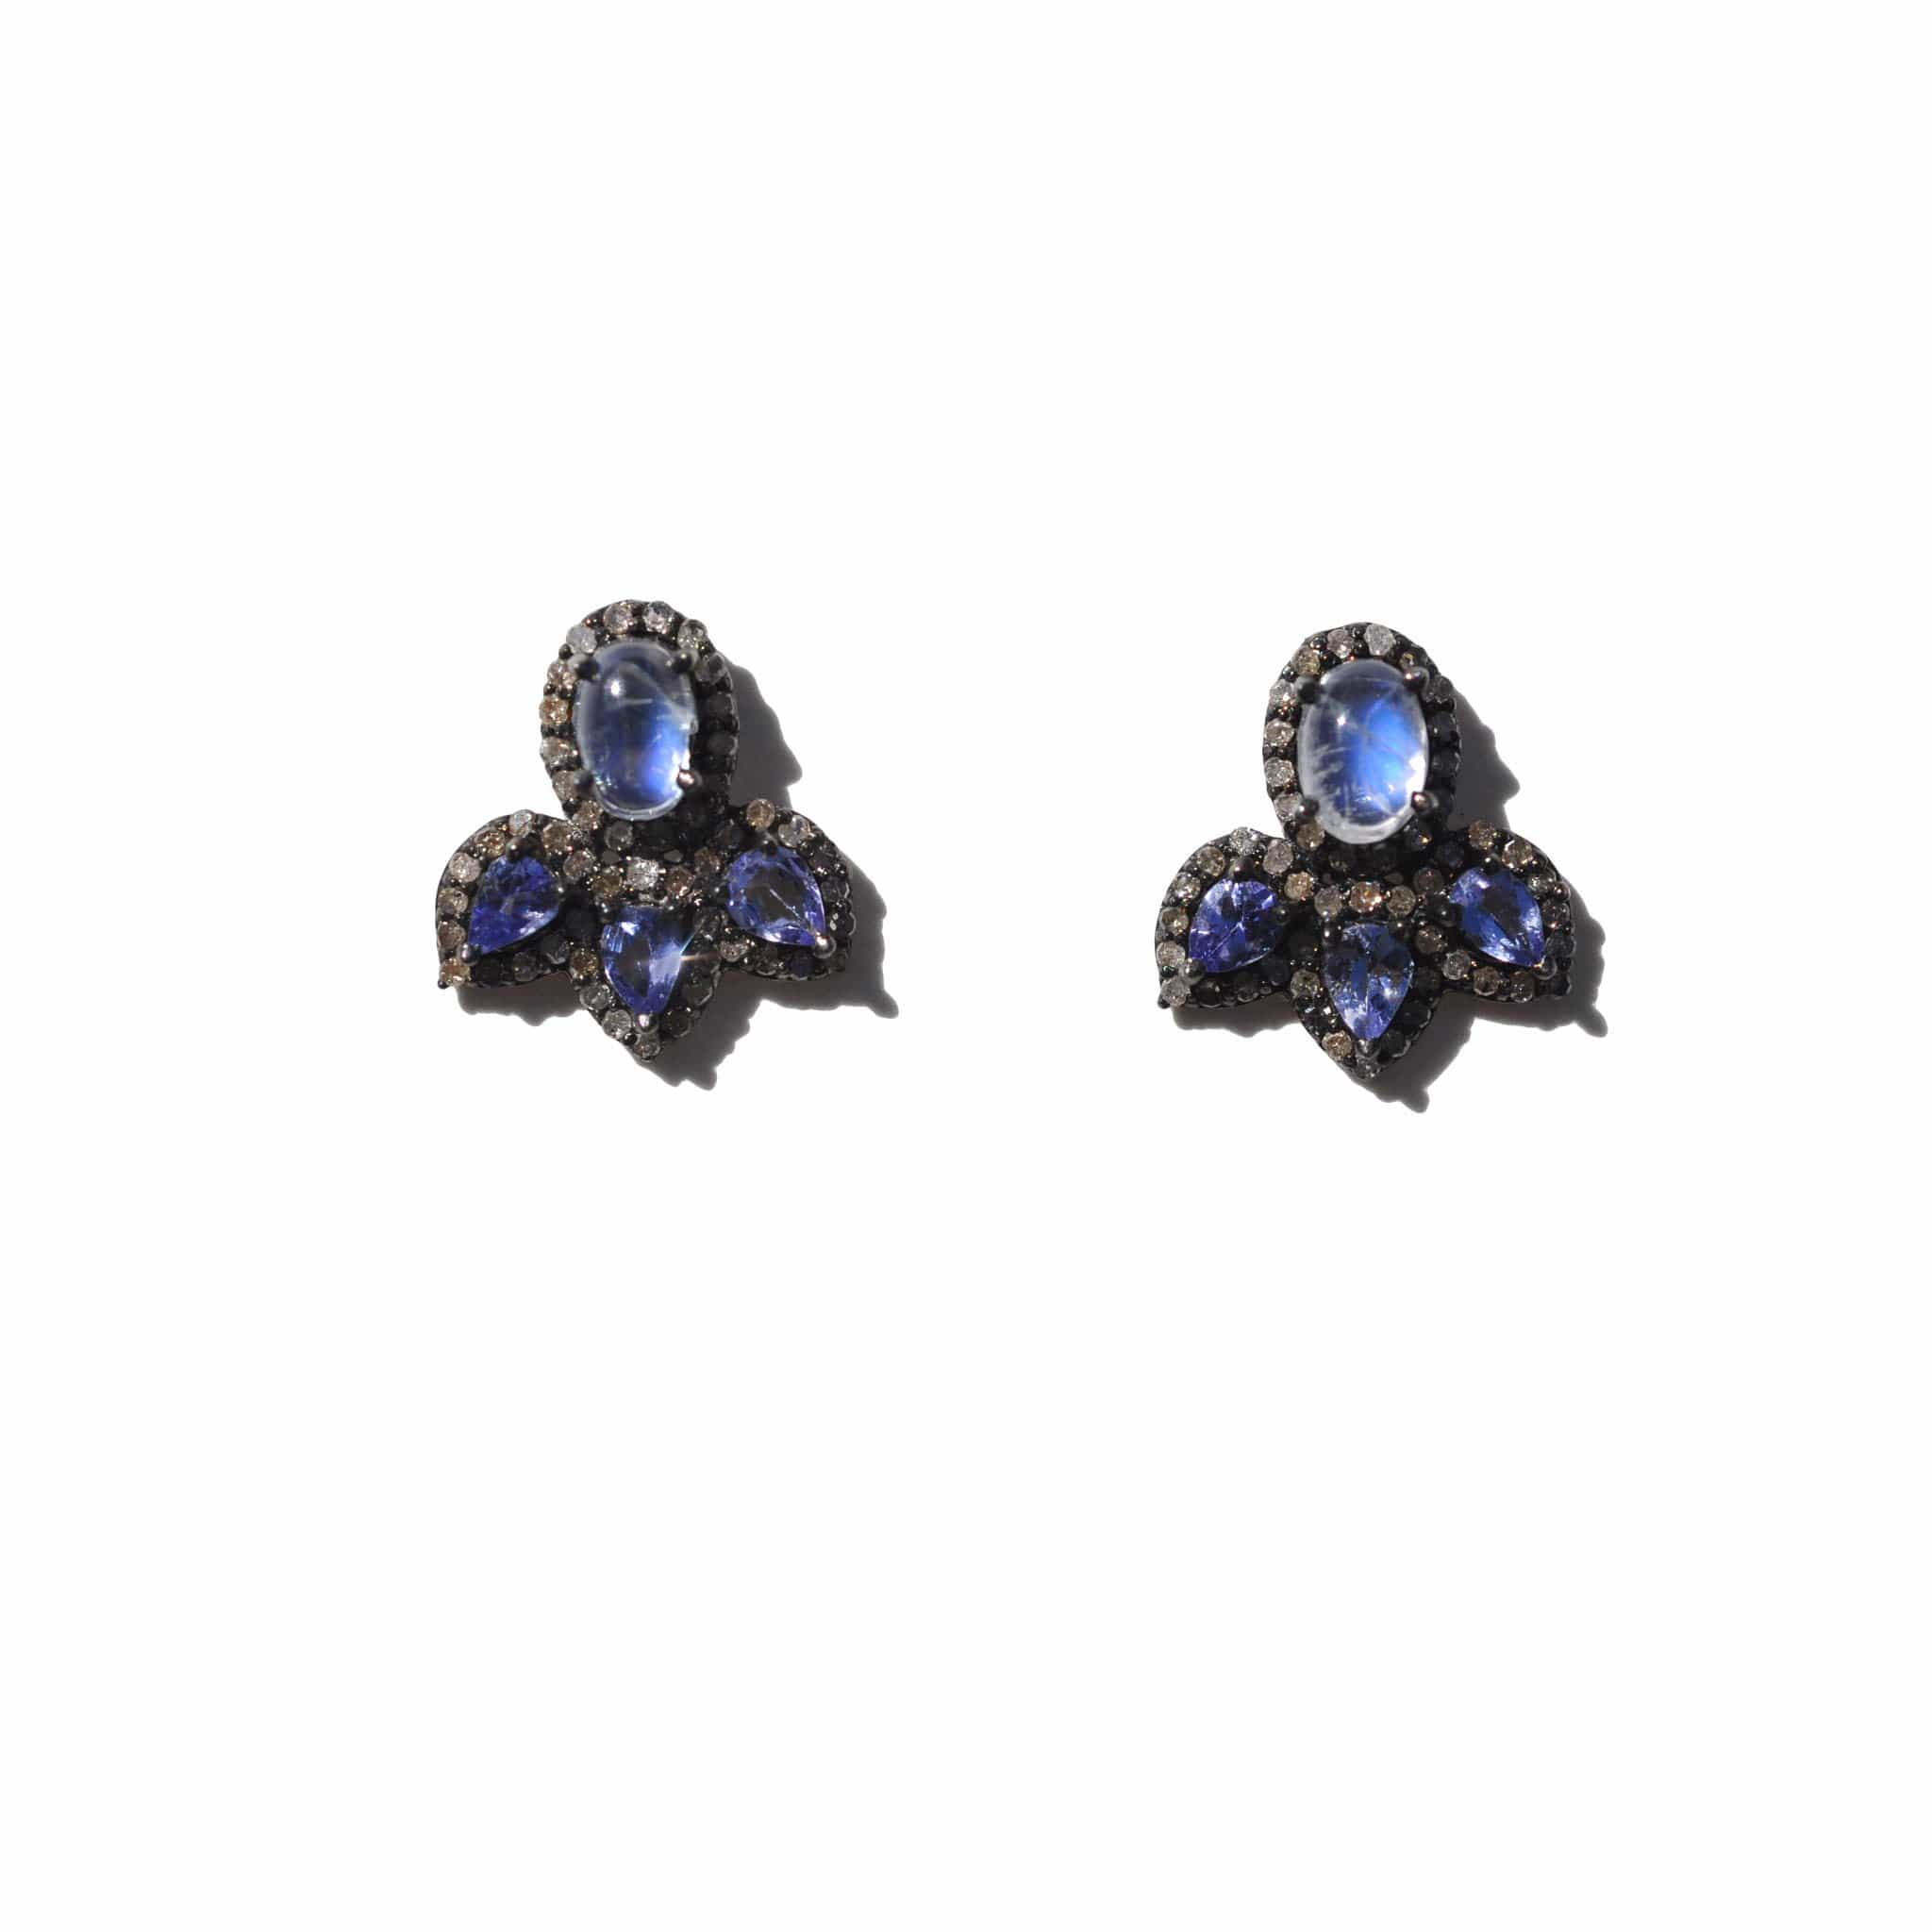 gold diamond earrings rose addthis cei diamondtanzanite tanzanite sharing sidebar p